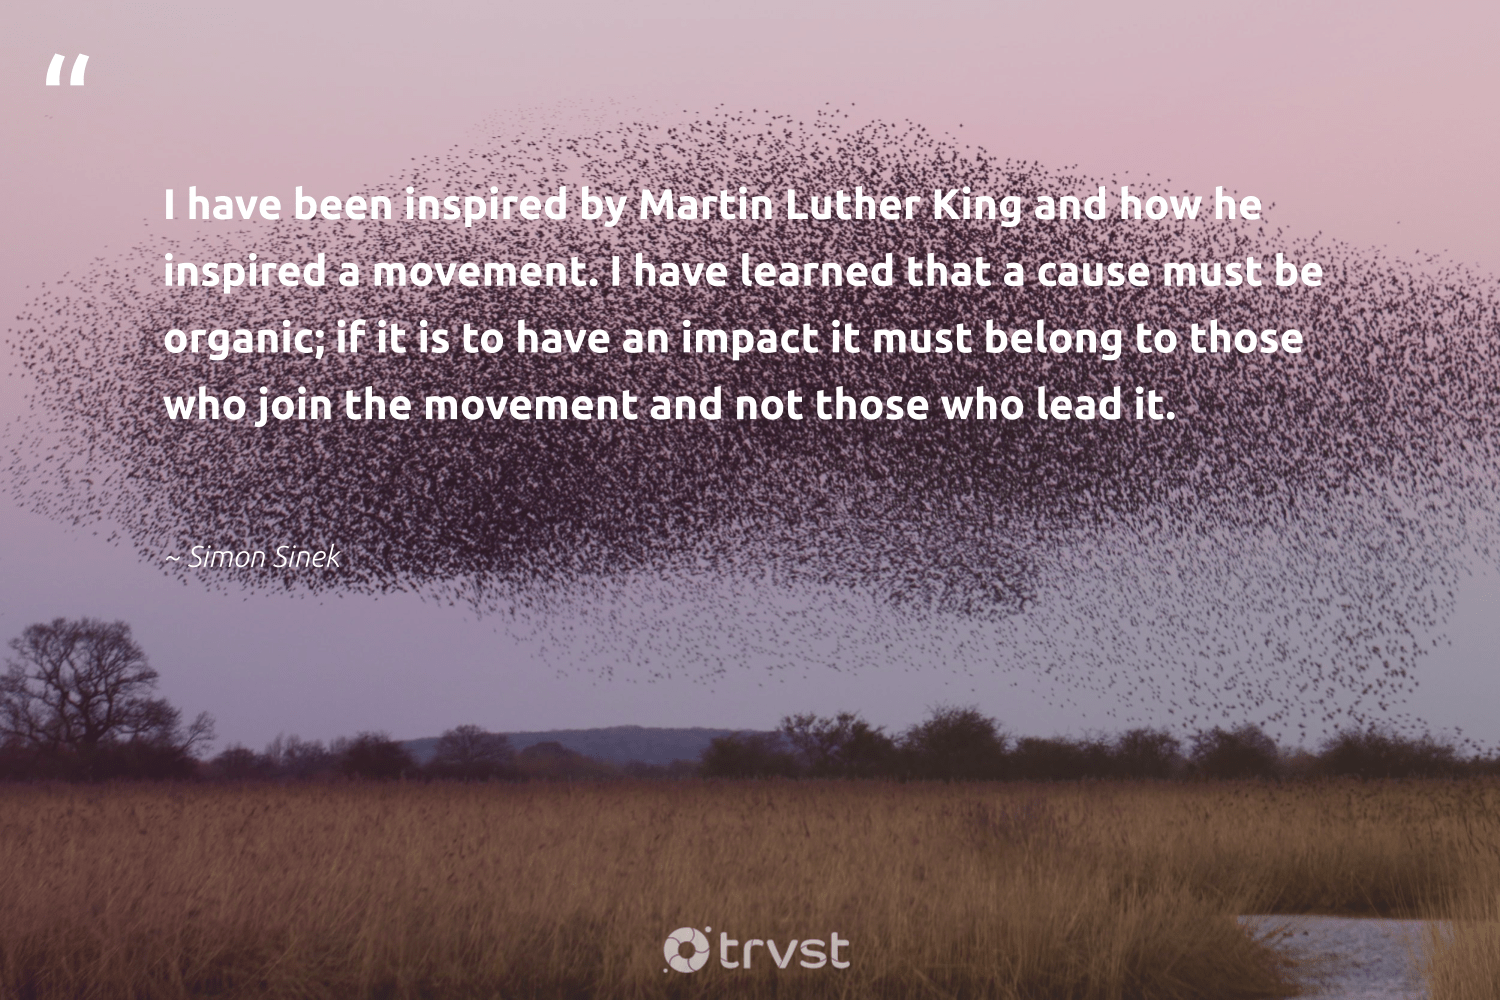 """""""I have been inspired by Martin Luther King and how he inspired a movement. I have learned that a cause must be organic; if it is to have an impact it must belong to those who join the movement and not those who lead it.""""  - Simon Sinek #trvst #quotes #impact #cause #Charity #weareallone #bethechange #dotherightthing #fundraising #socialchange #workingtogether #takeaction"""